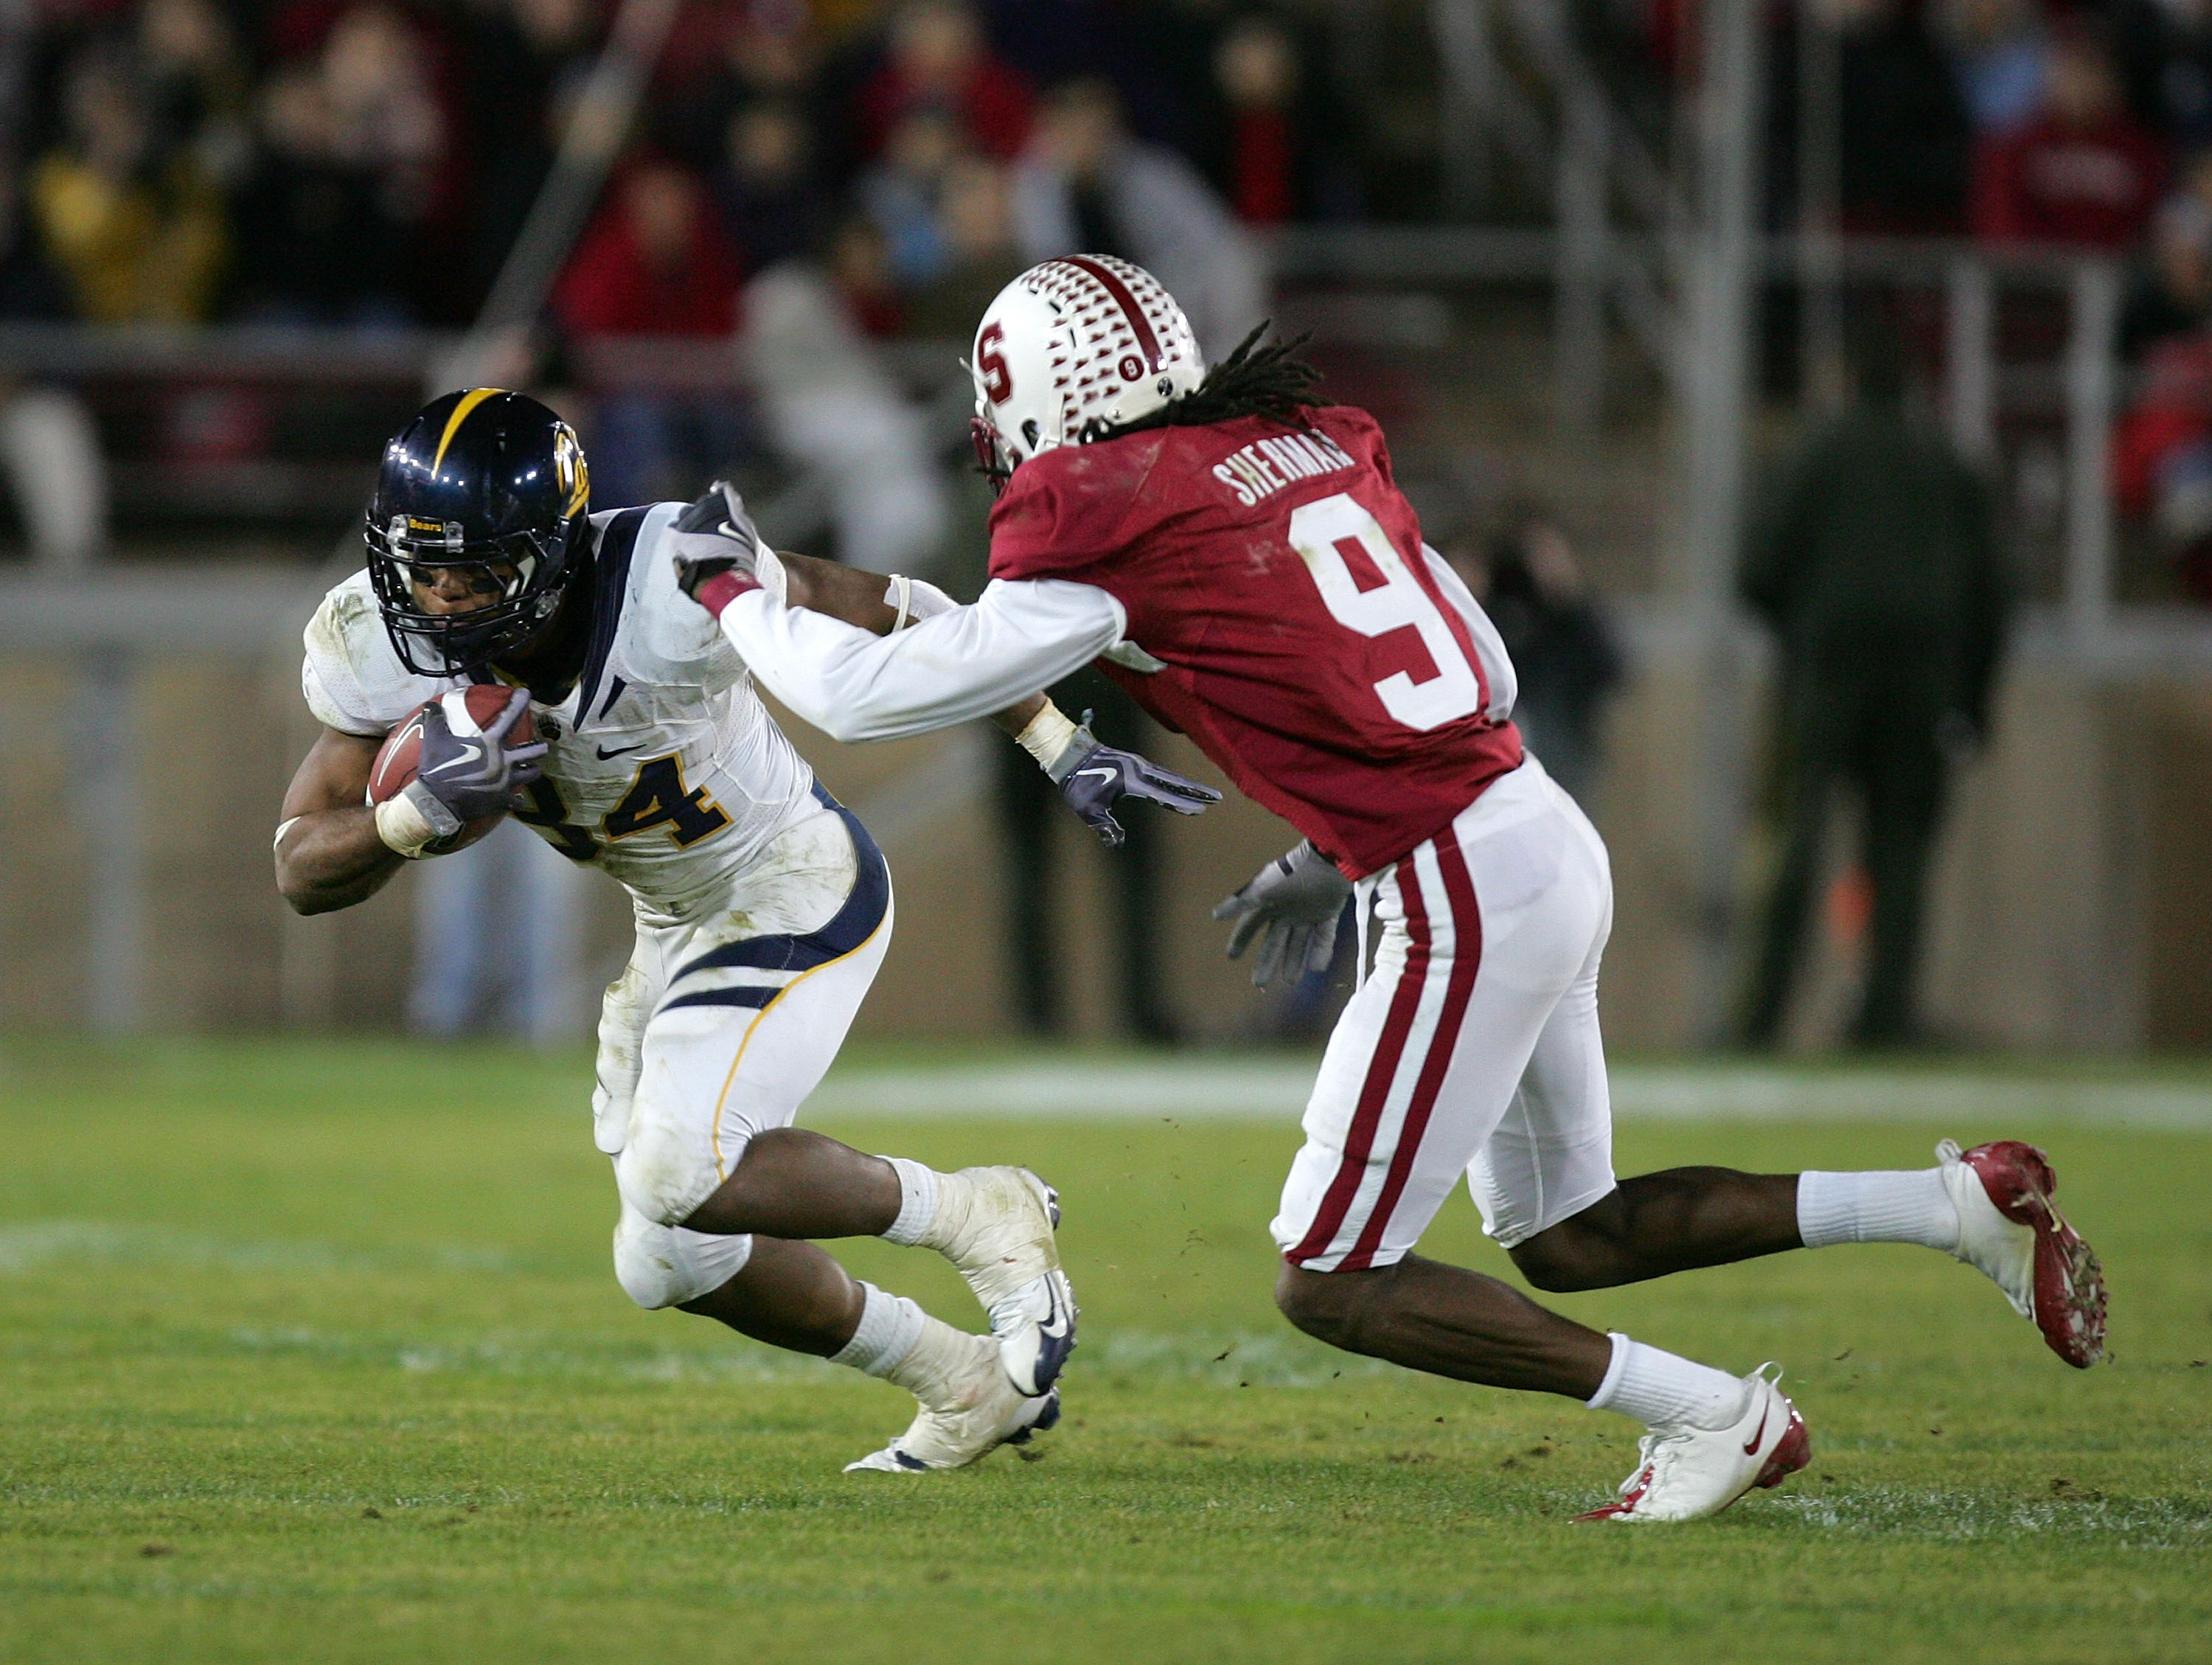 PALO ALTO, CA - NOVEMBER 21:  Shane Vereen #34 of the California Bears tries to run around Richard Sherman #9 of the Stanford Cardinal at Stanford Stadium on November 21, 2009 in Palo Alto, California.  (Photo by Ezra Shaw/Getty Images)